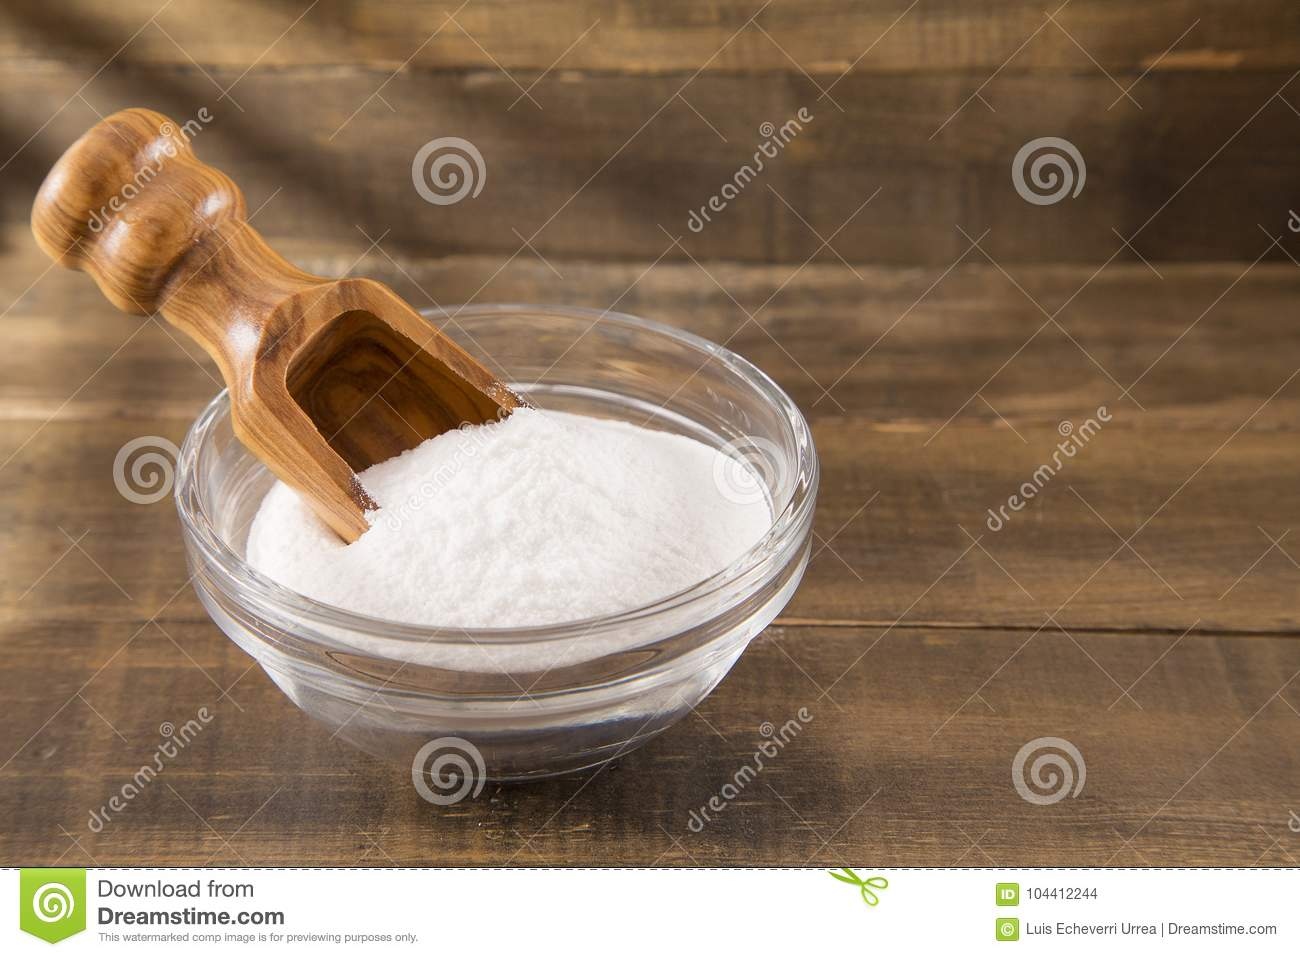 Baking Soda Sodium Bicarbonate On A Wooden Spoon Stock Photo